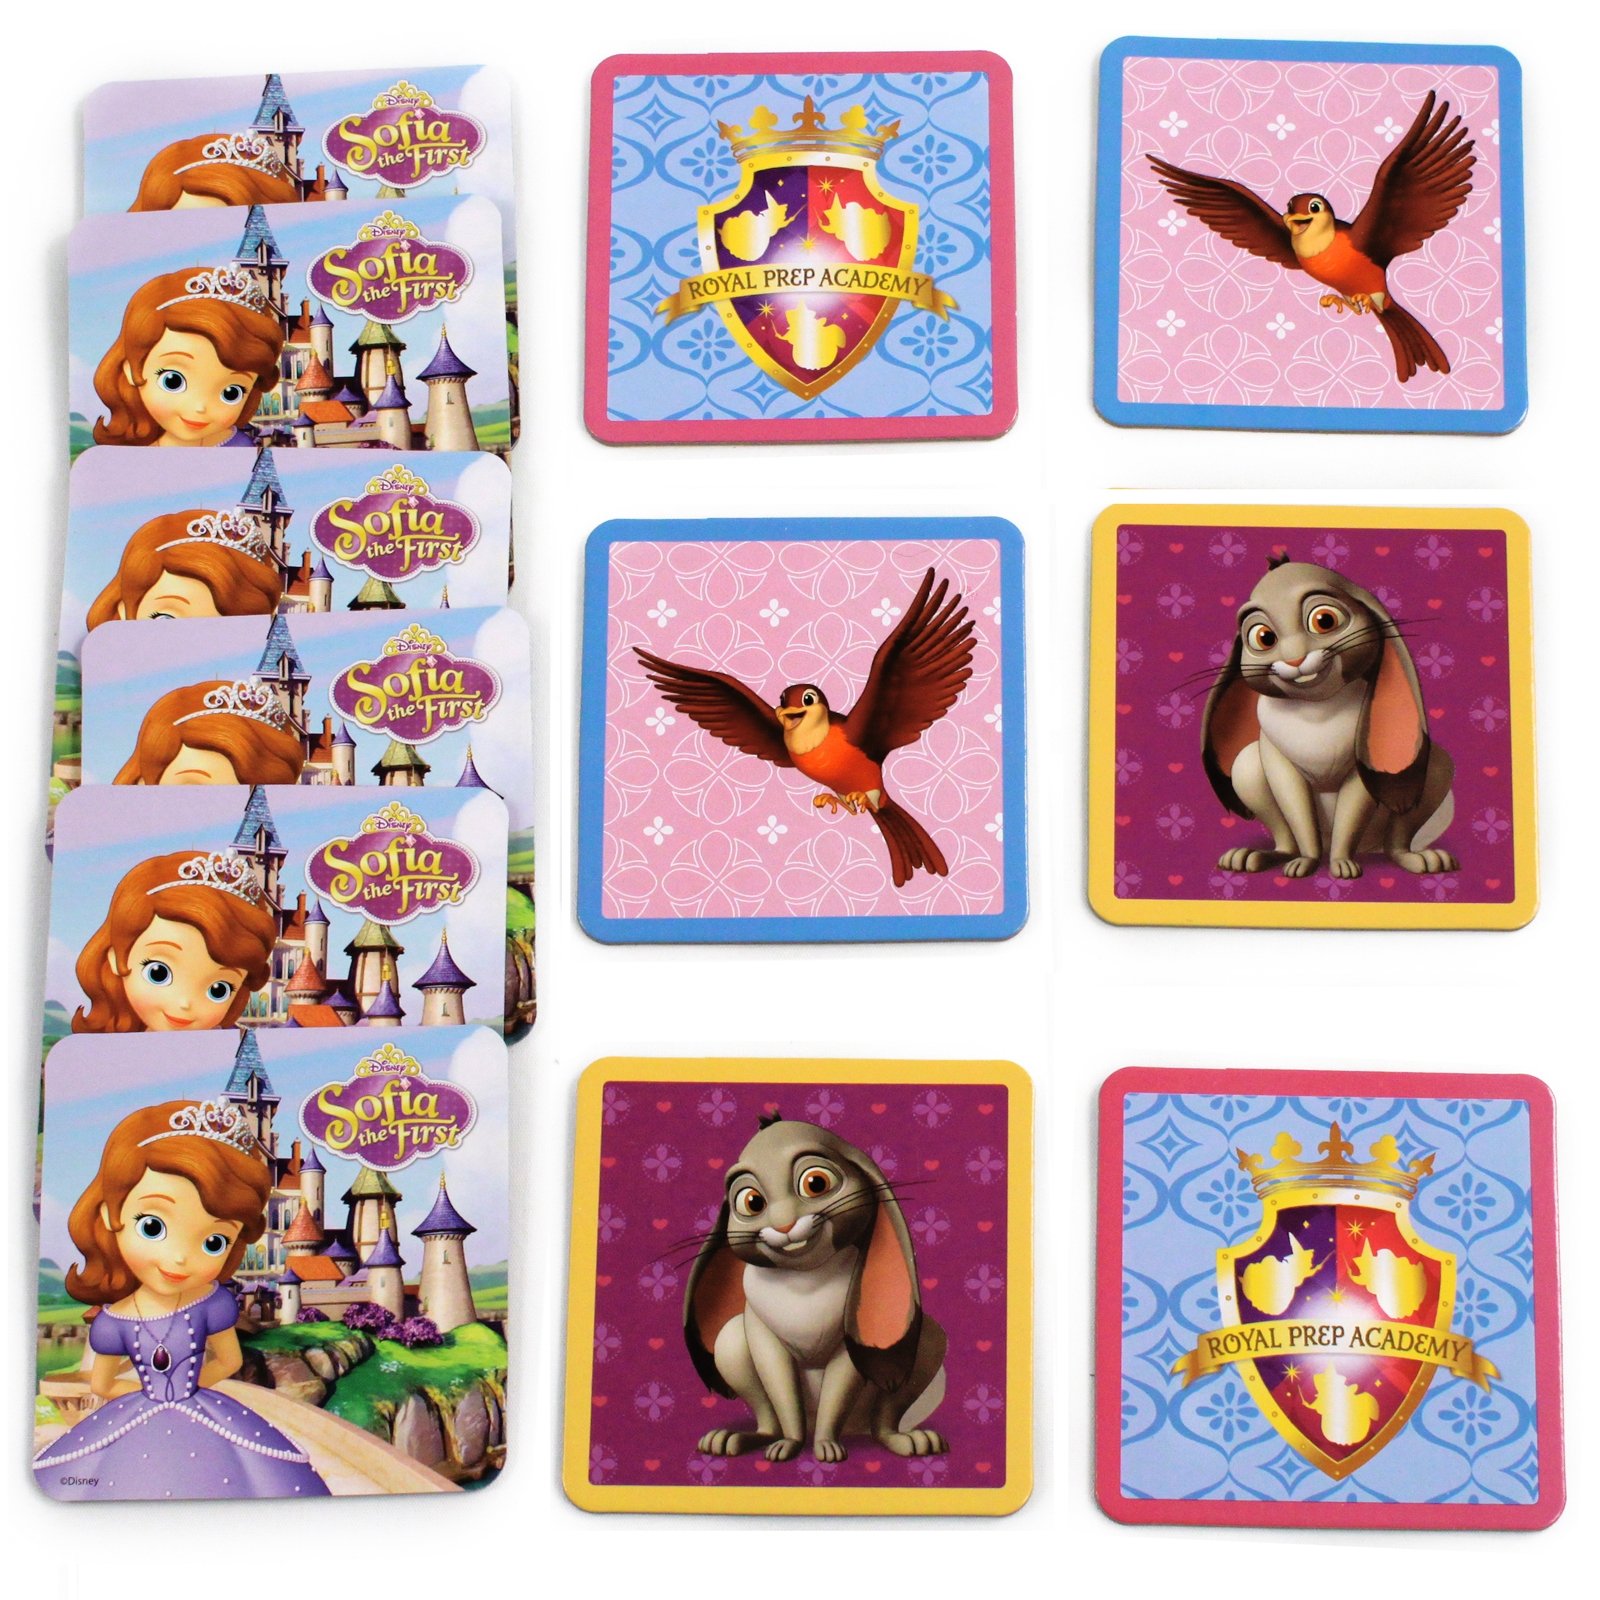 Uncategorized Princess Memory Game disney sofia the first princess memory match floor game matching cards clover and robin